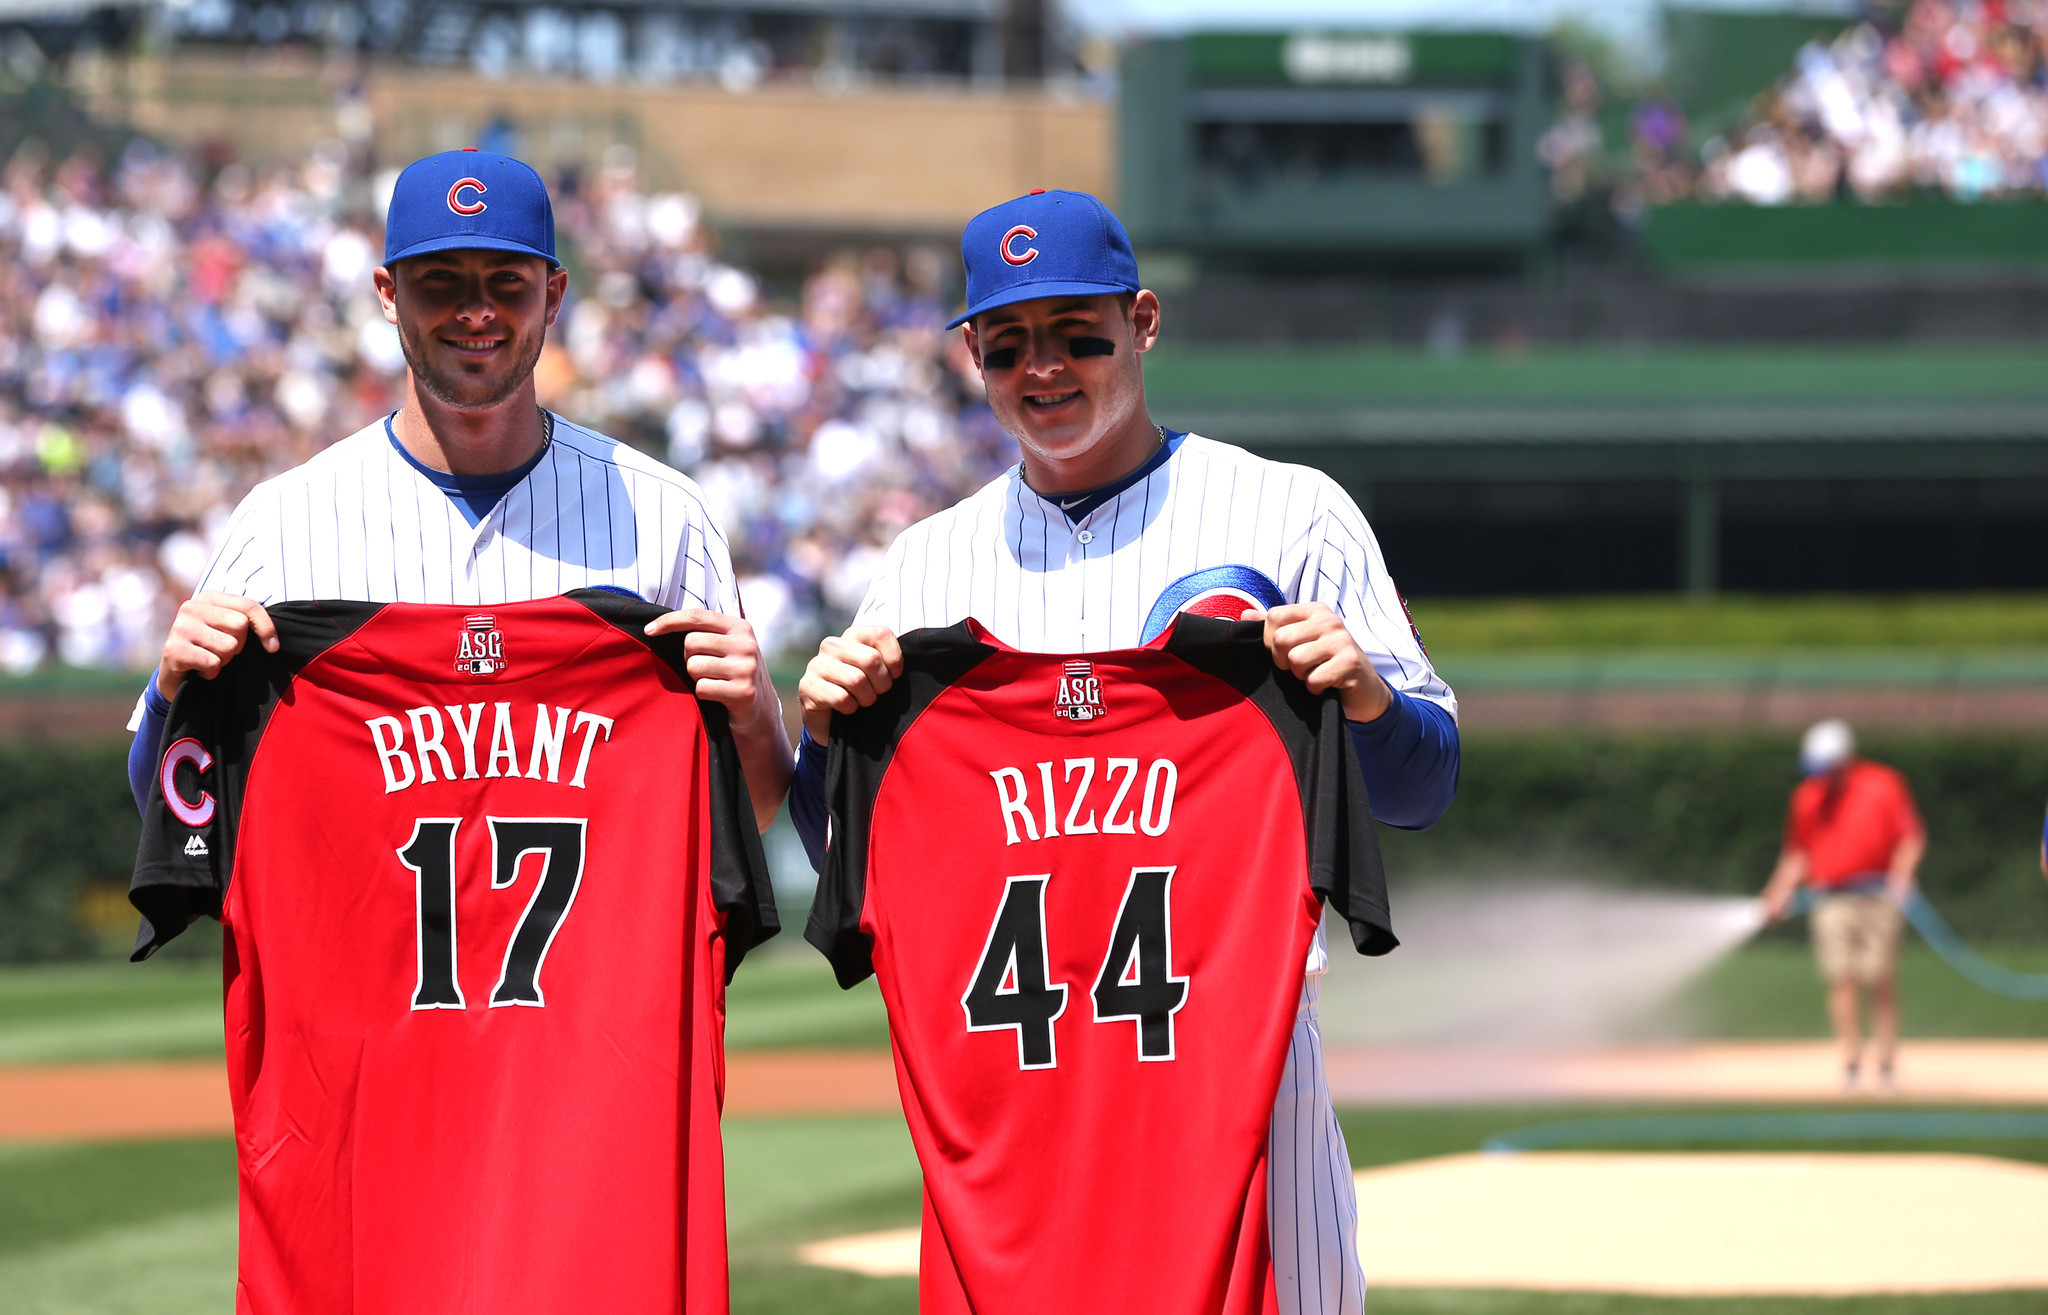 Can Kris Bryant or Anthony Rizzo win the Home Run Derby Chicago